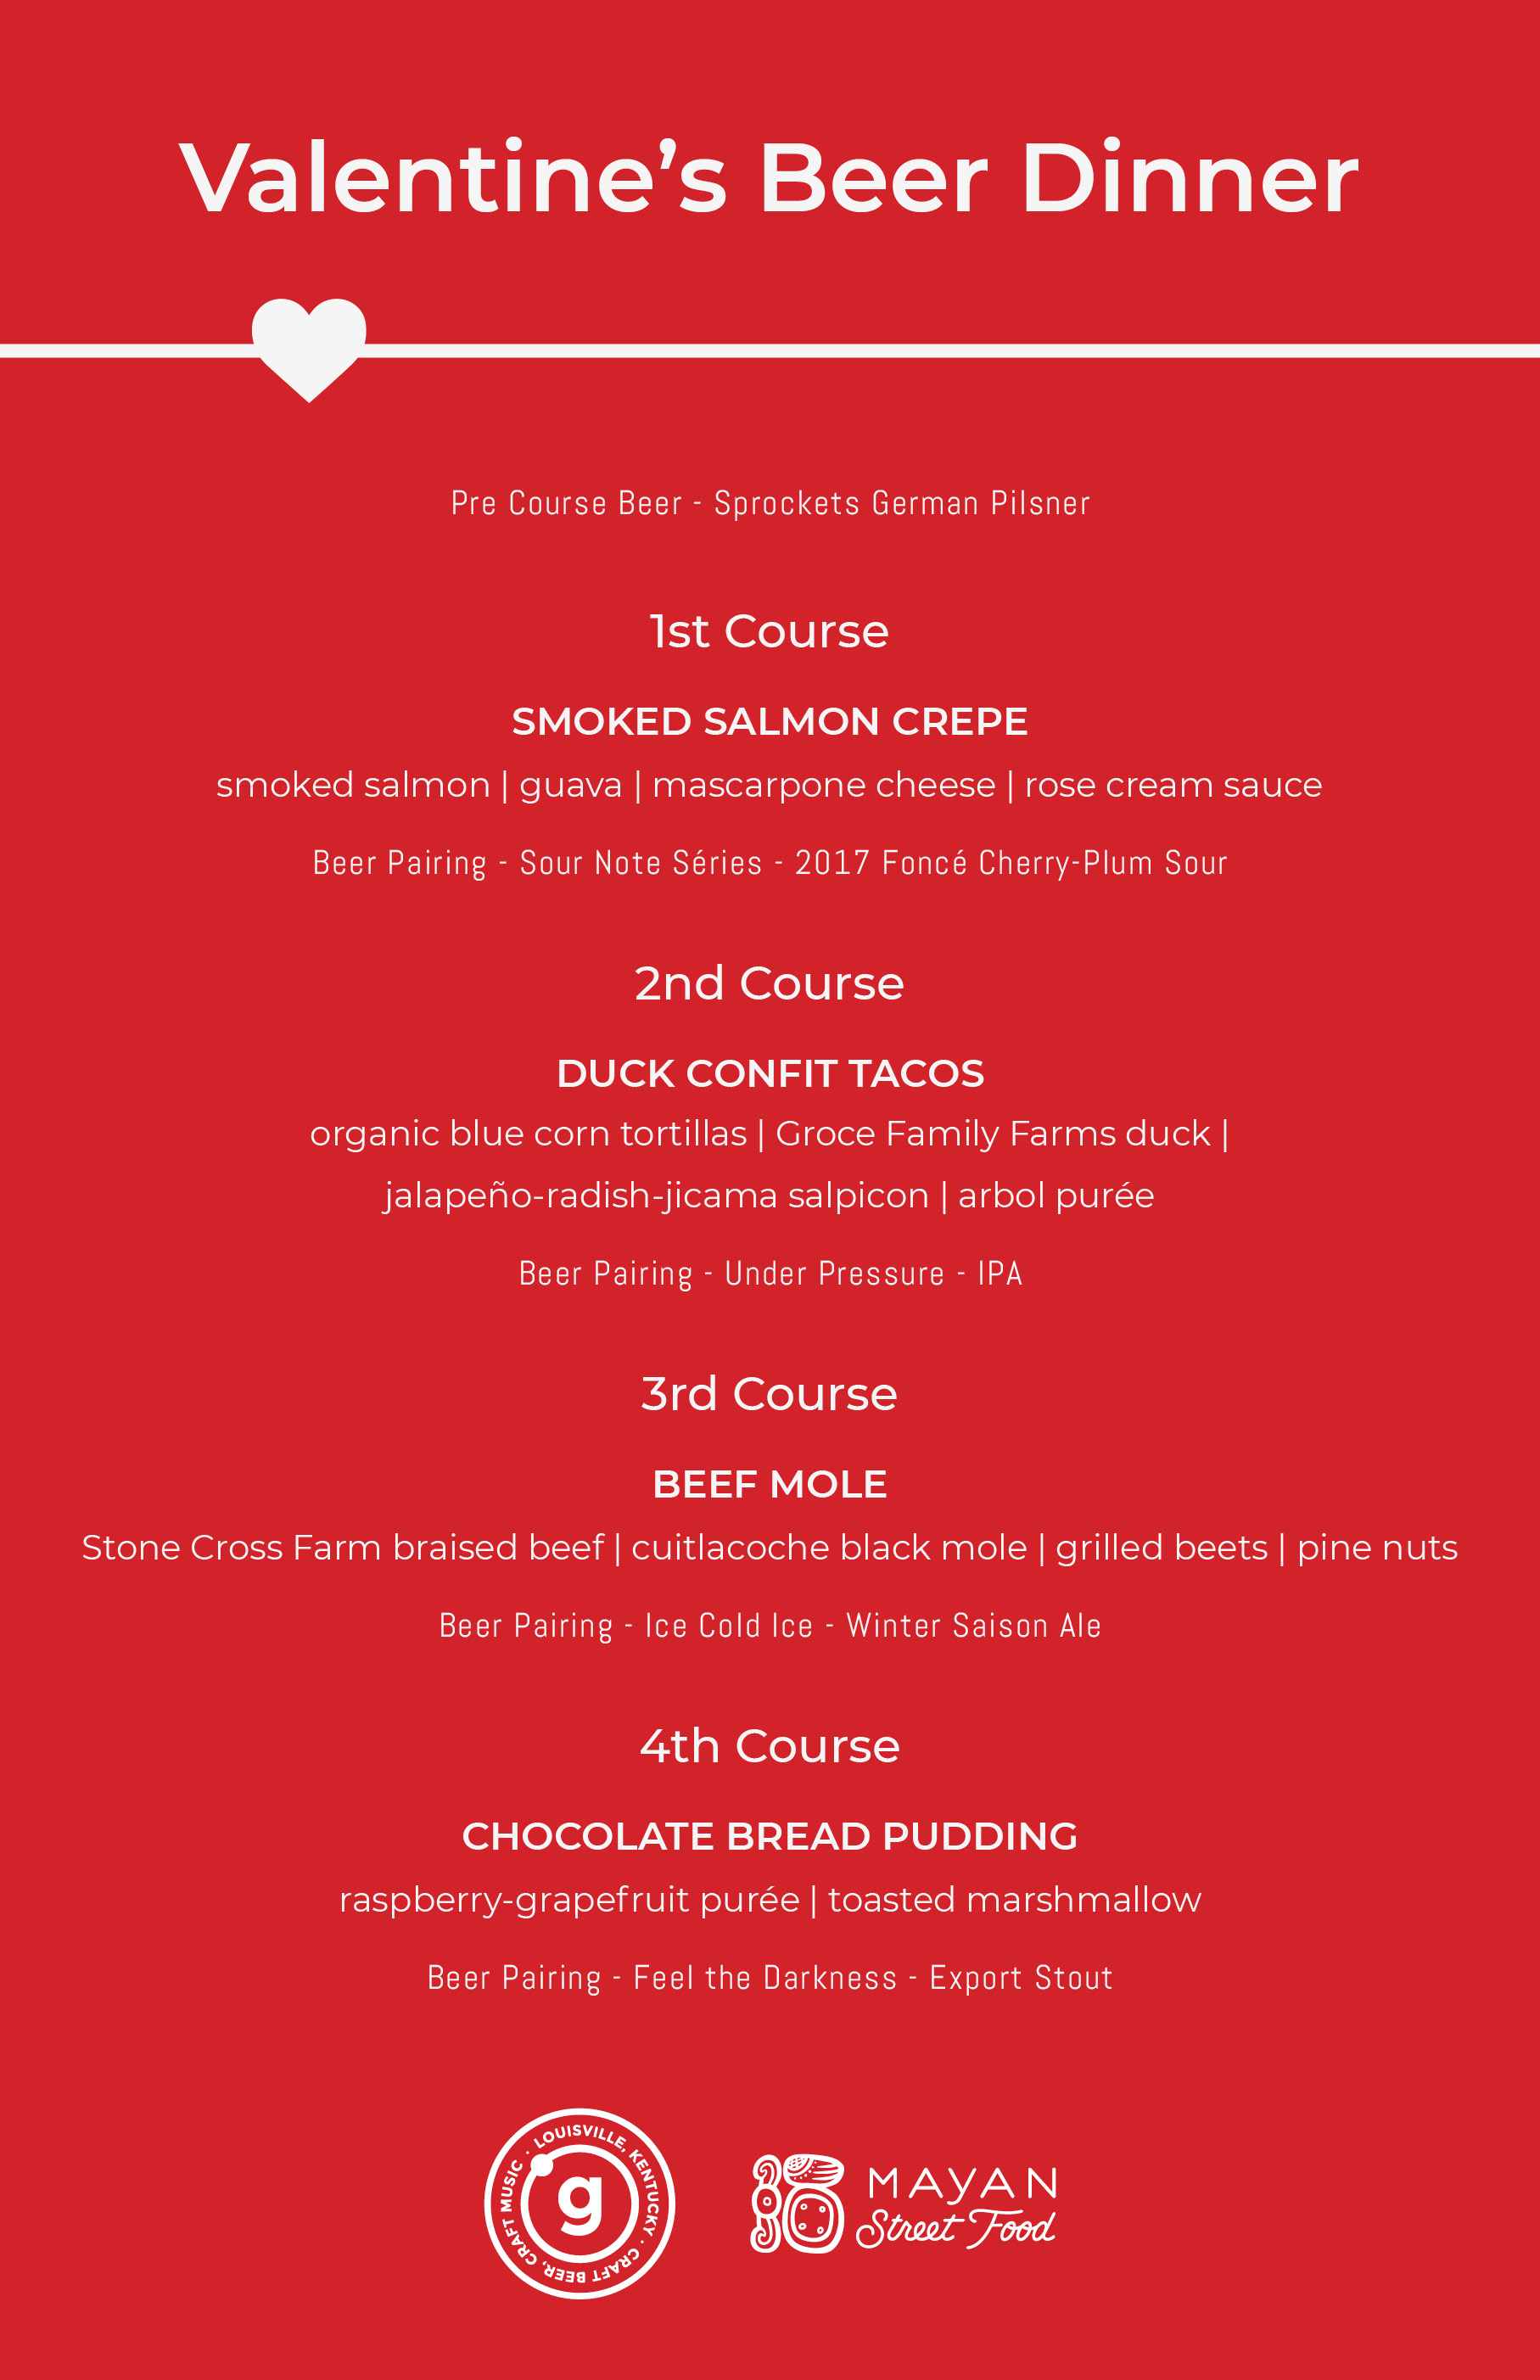 Valentine's Day Beer Dinner